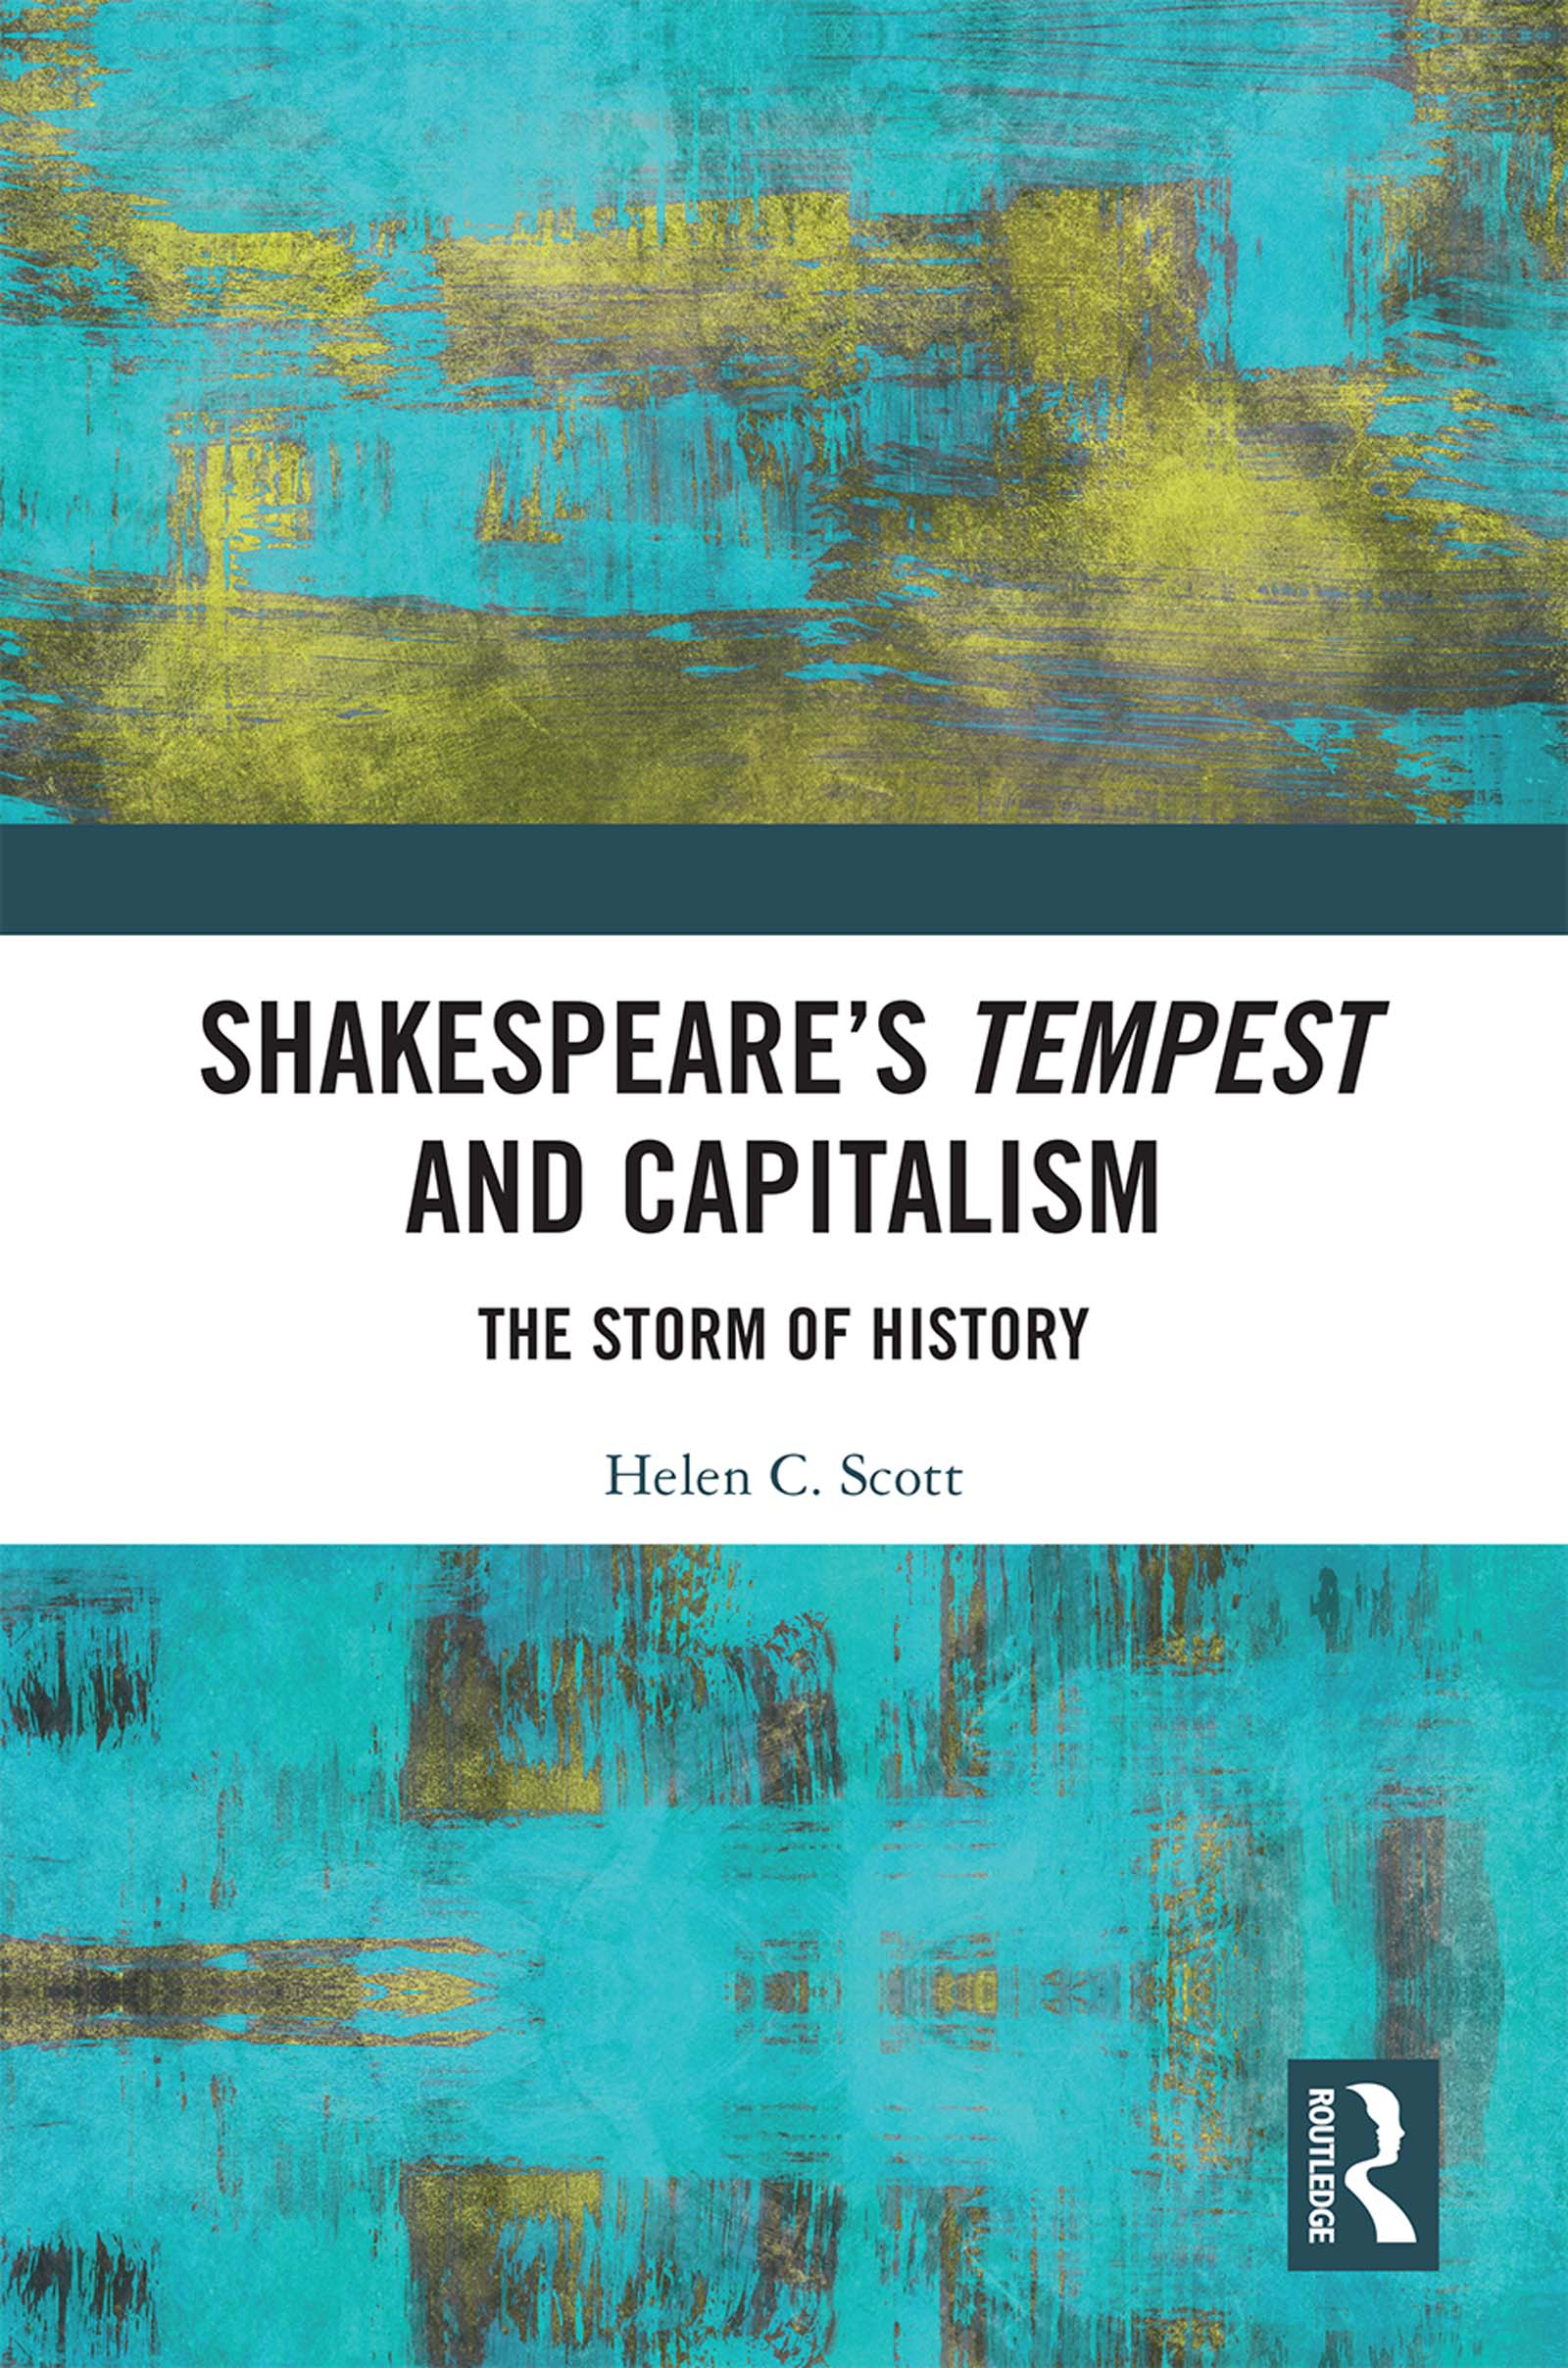 Shakespeare's Tempest and Capitalism: The Storm of History book cover